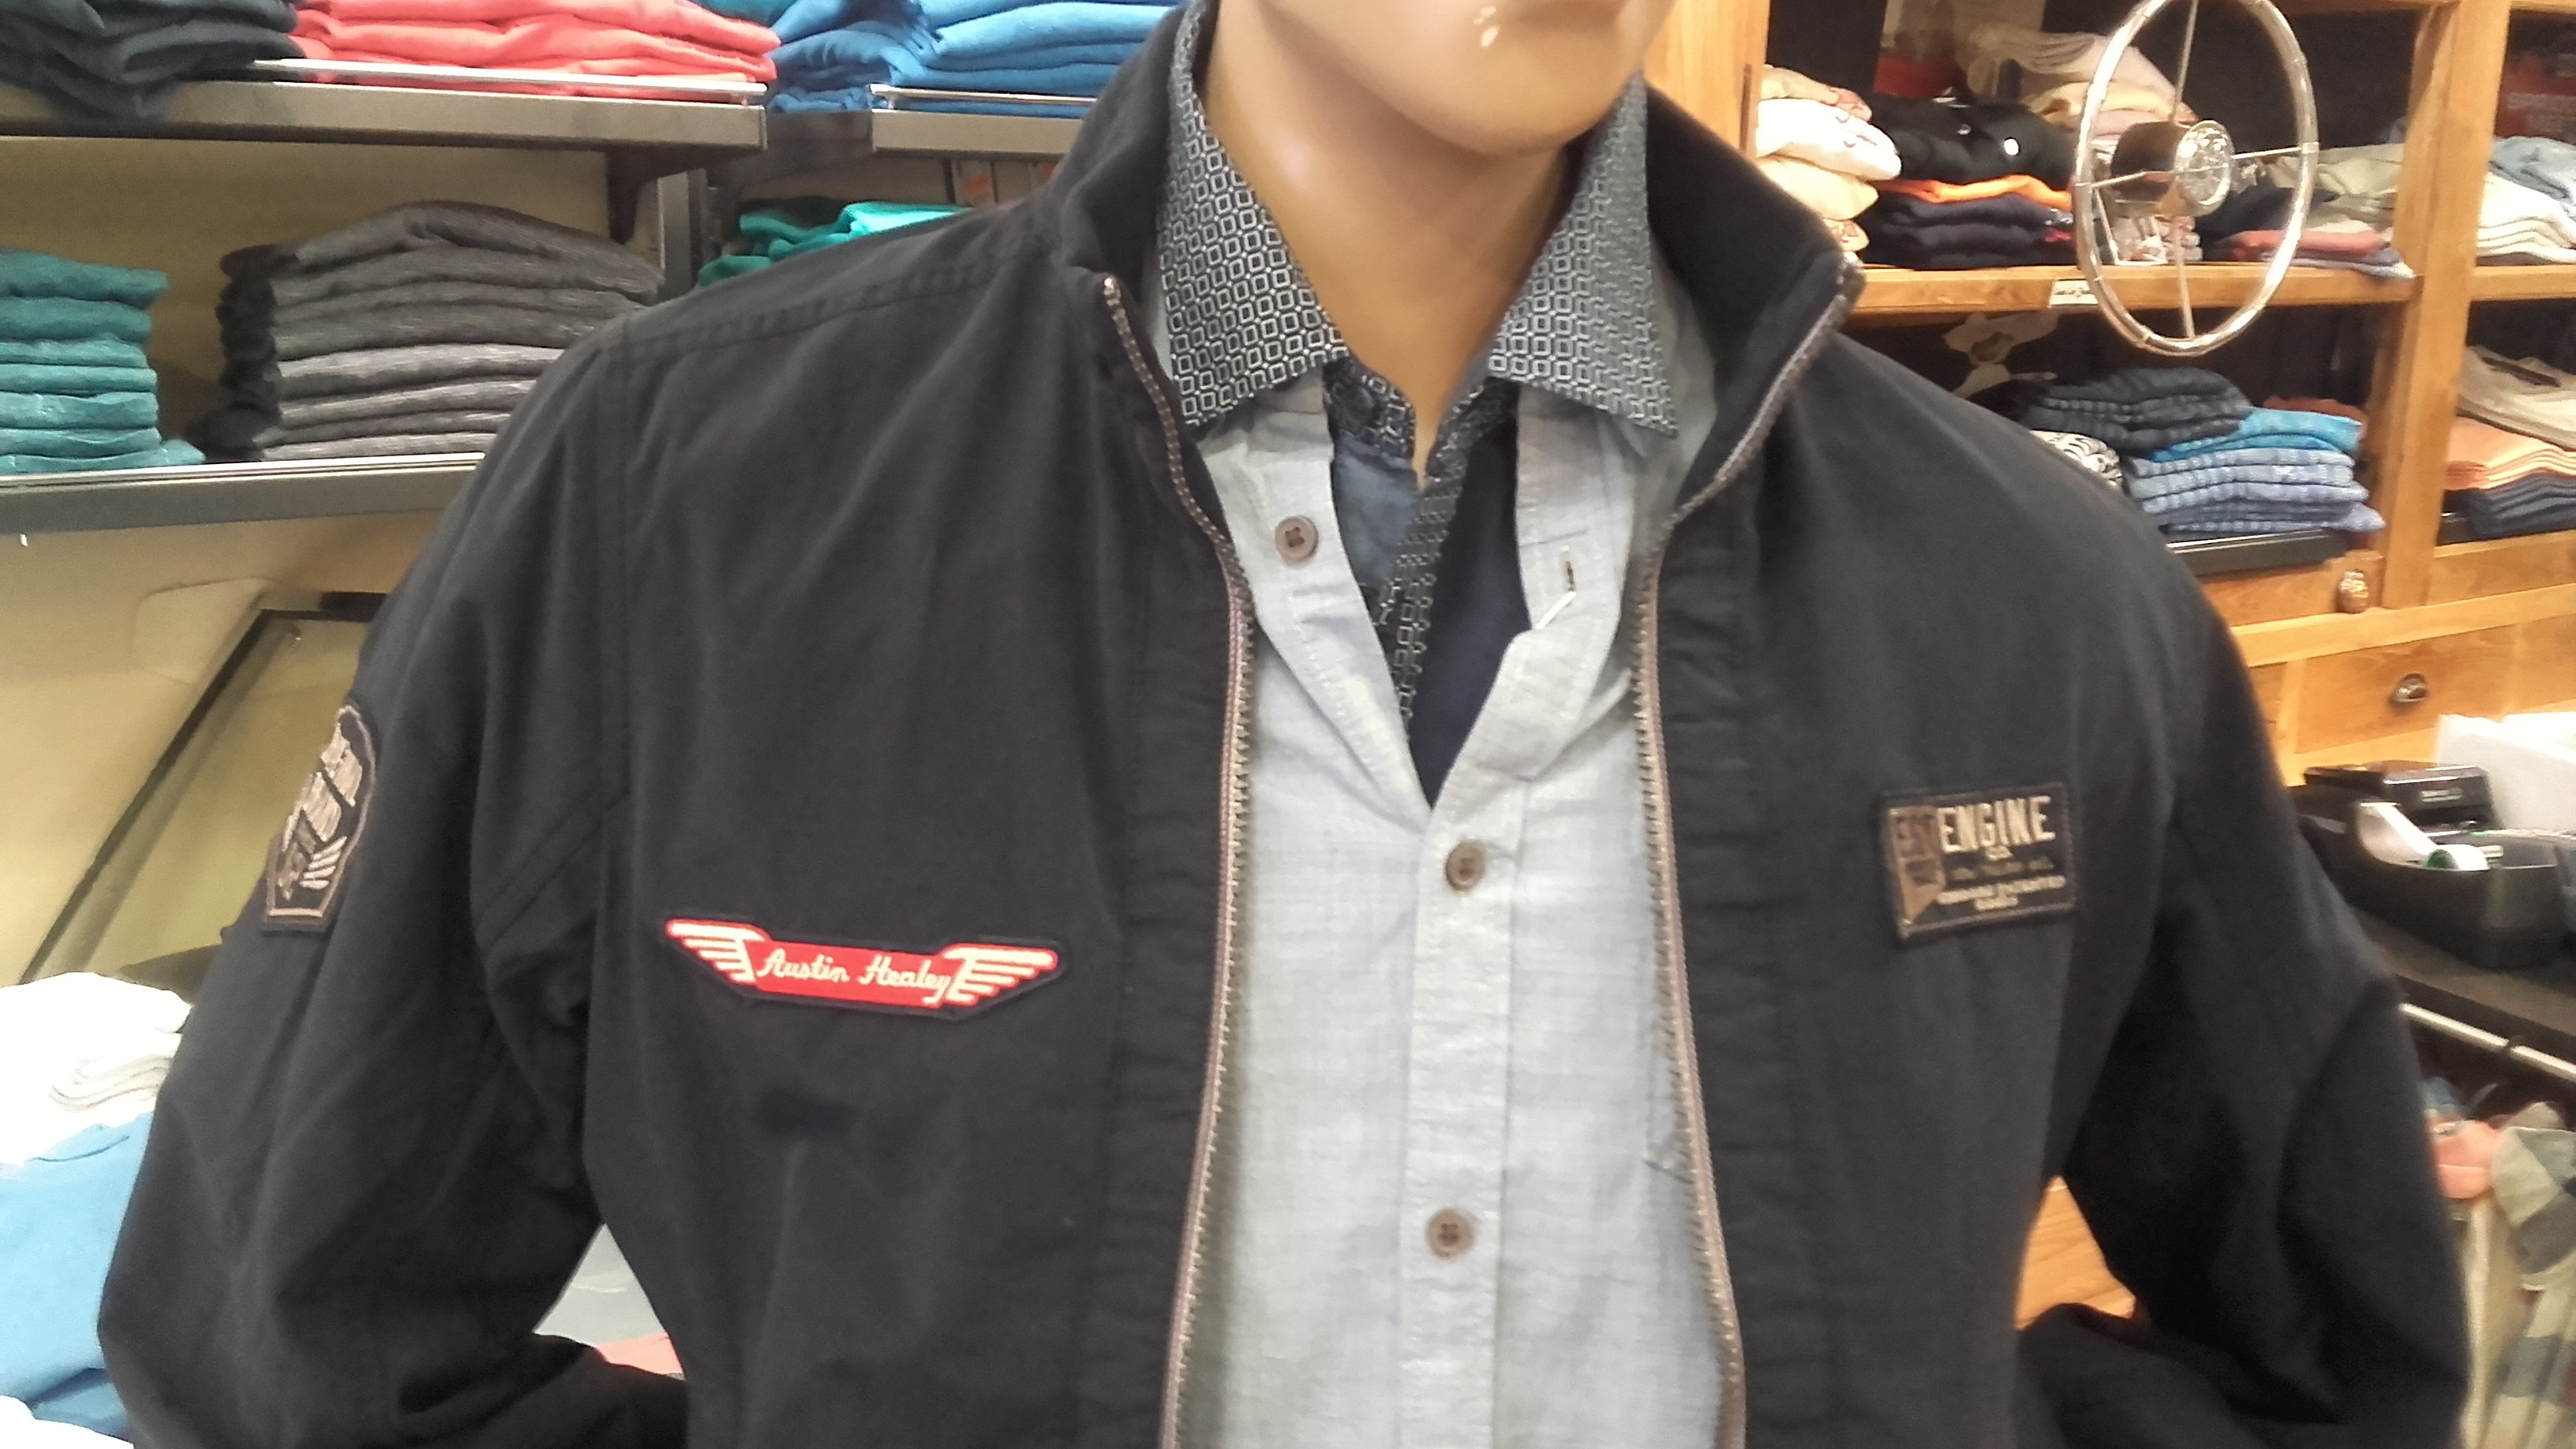 Austin Healey Engine jacket cotton